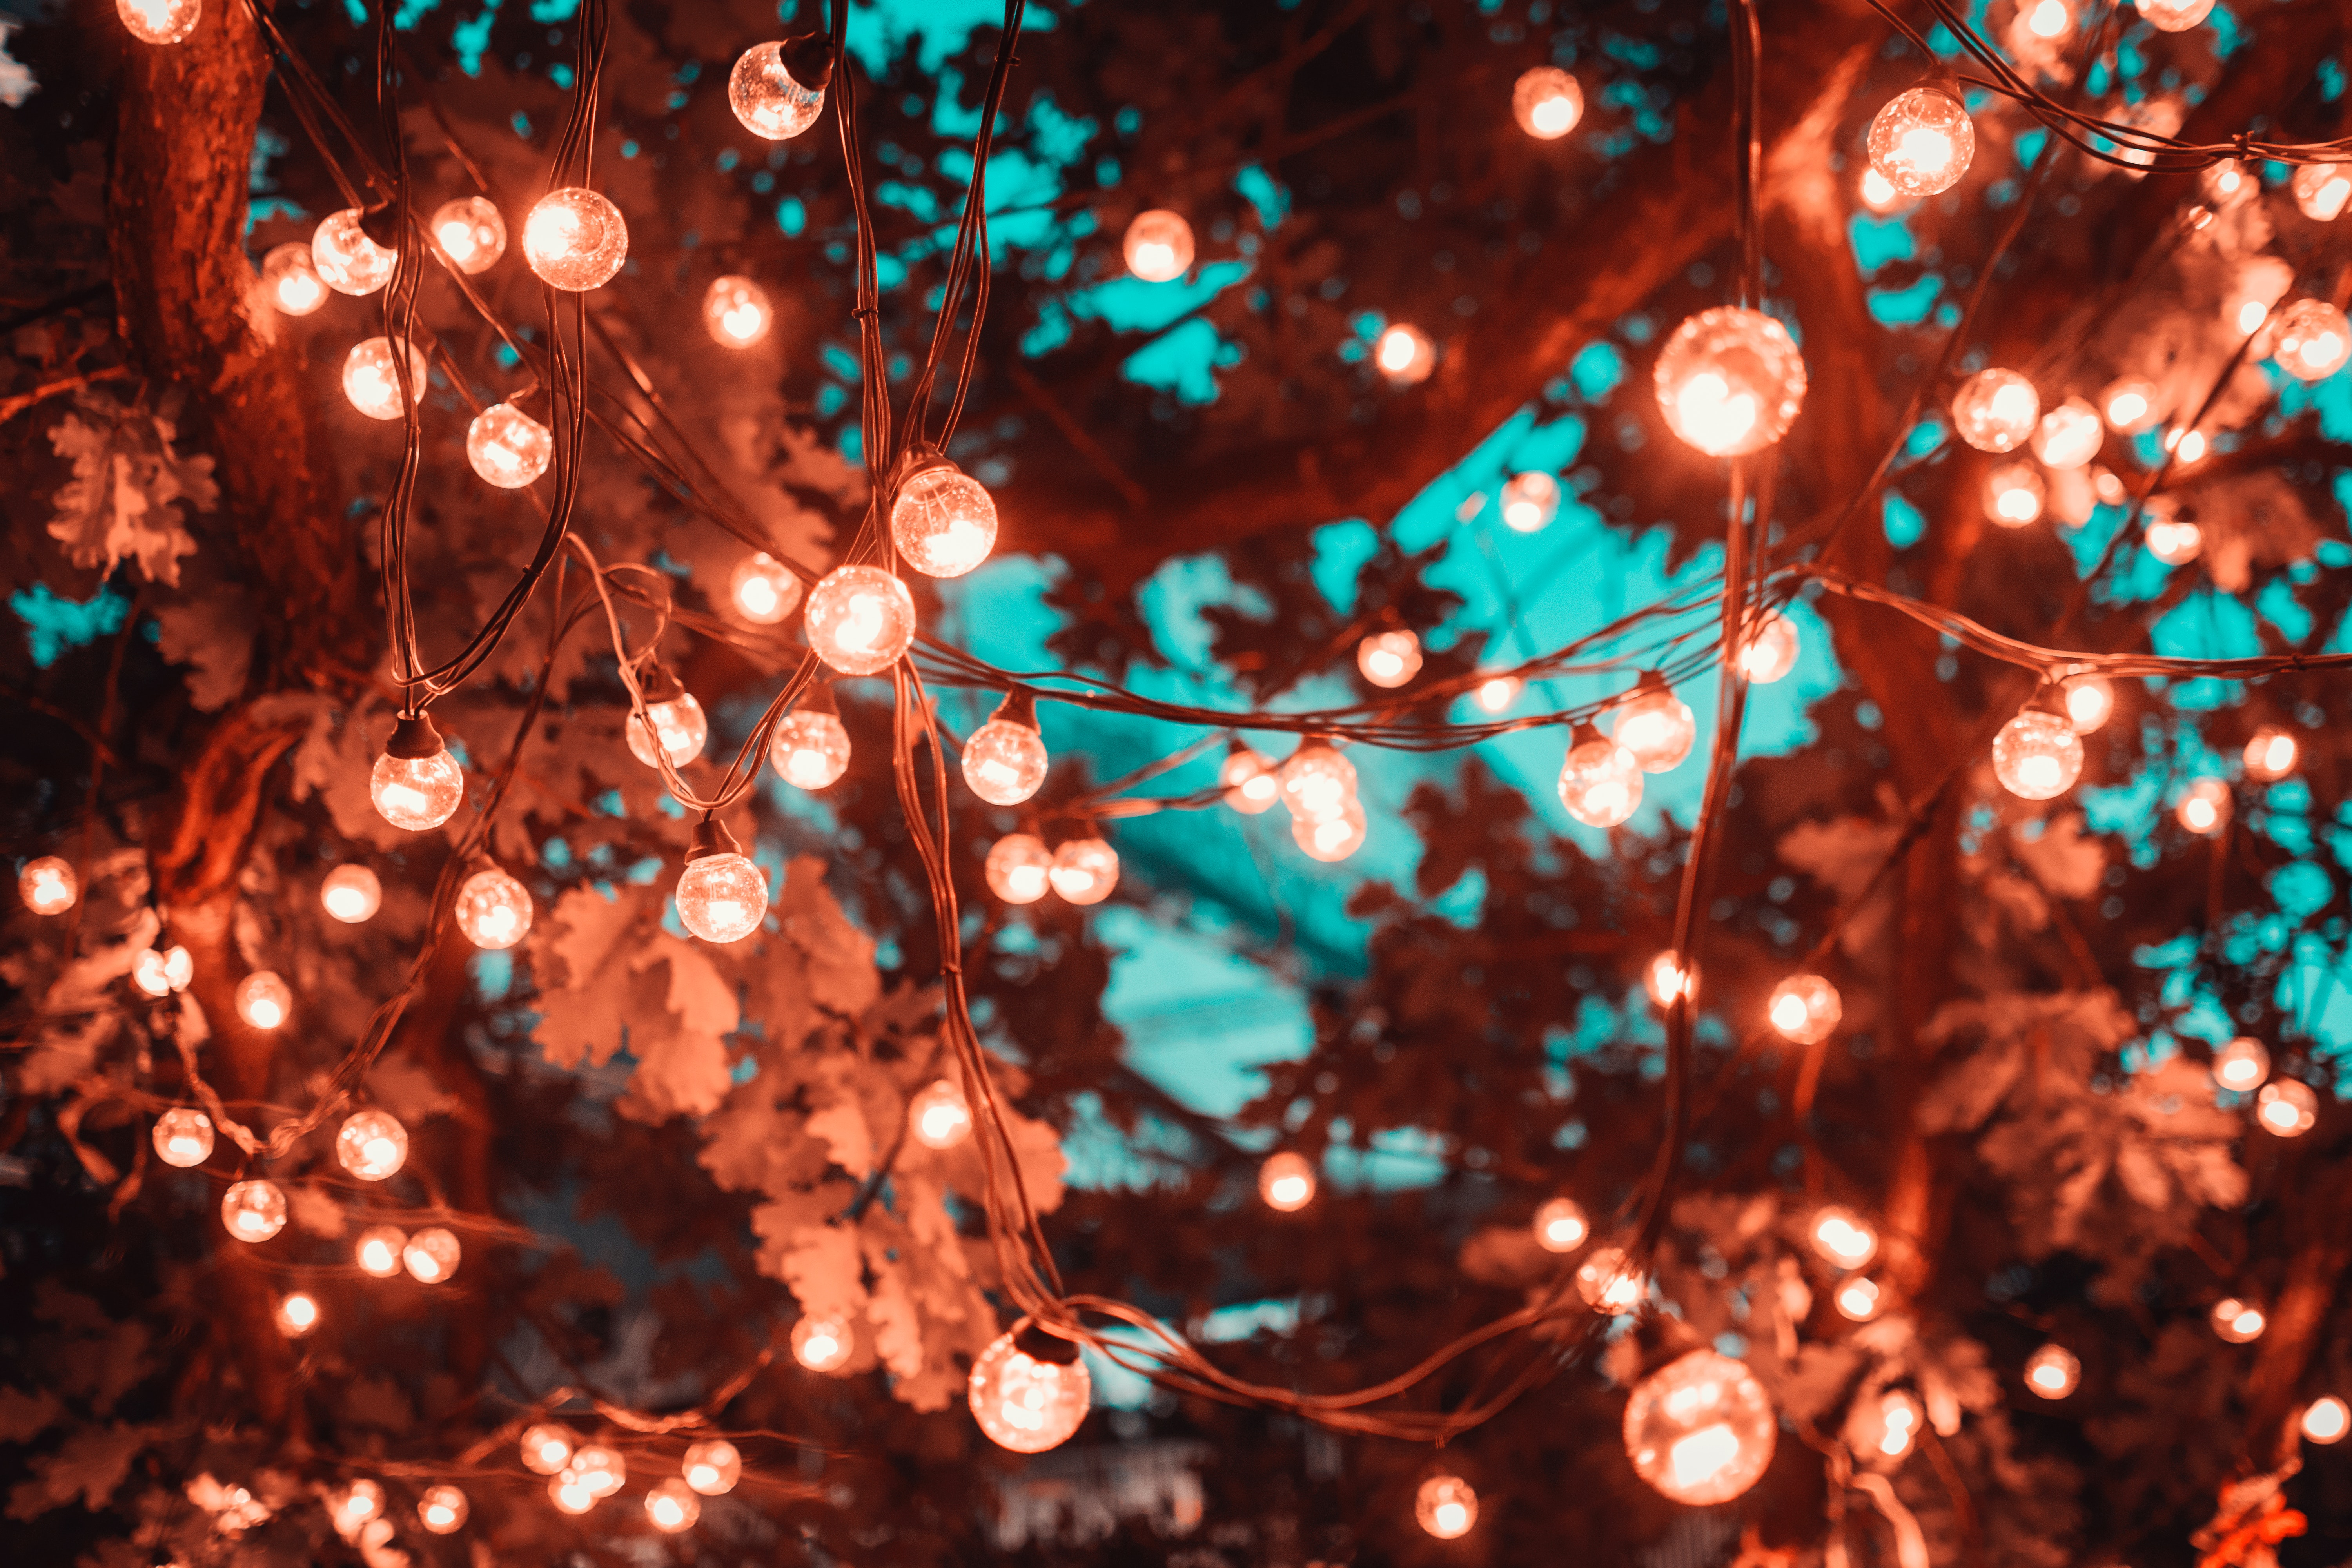 66338 download wallpaper Miscellanea, Miscellaneous, Light Bulbs, Garland, Lighting, Illumination, Blur, Smooth screensavers and pictures for free